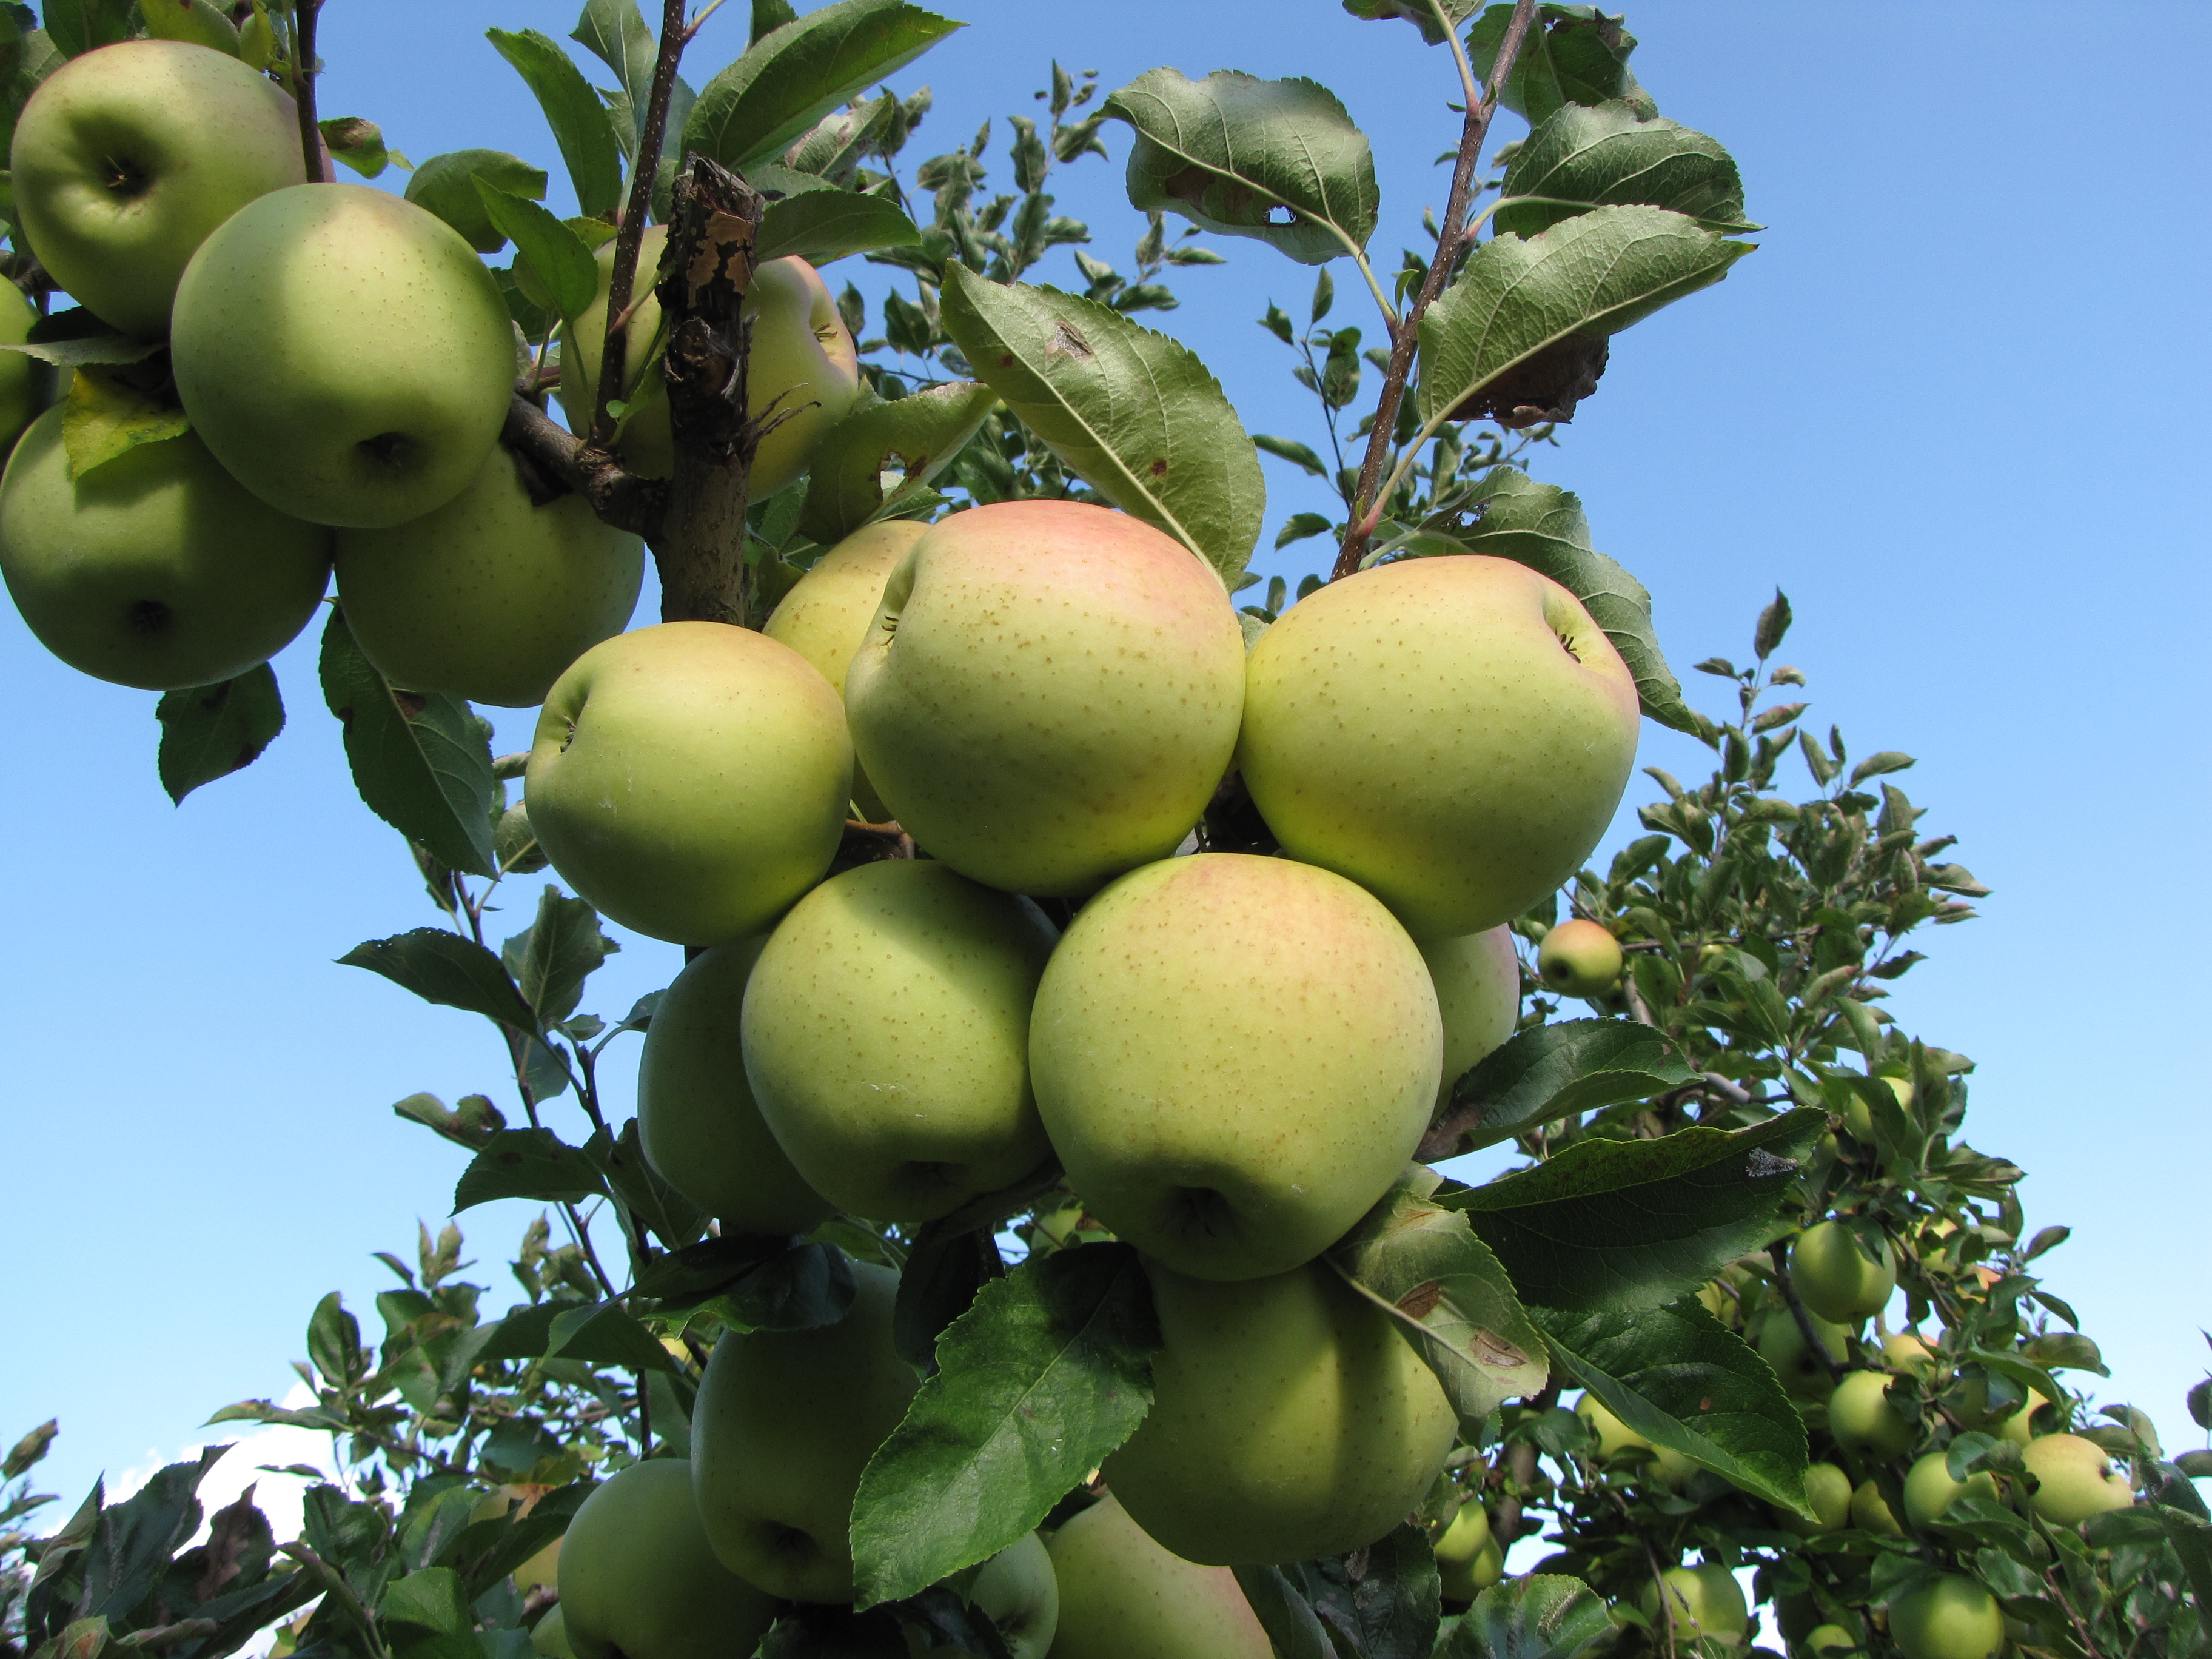 admiring the empire apple dings and dents new england apples. Black Bedroom Furniture Sets. Home Design Ideas